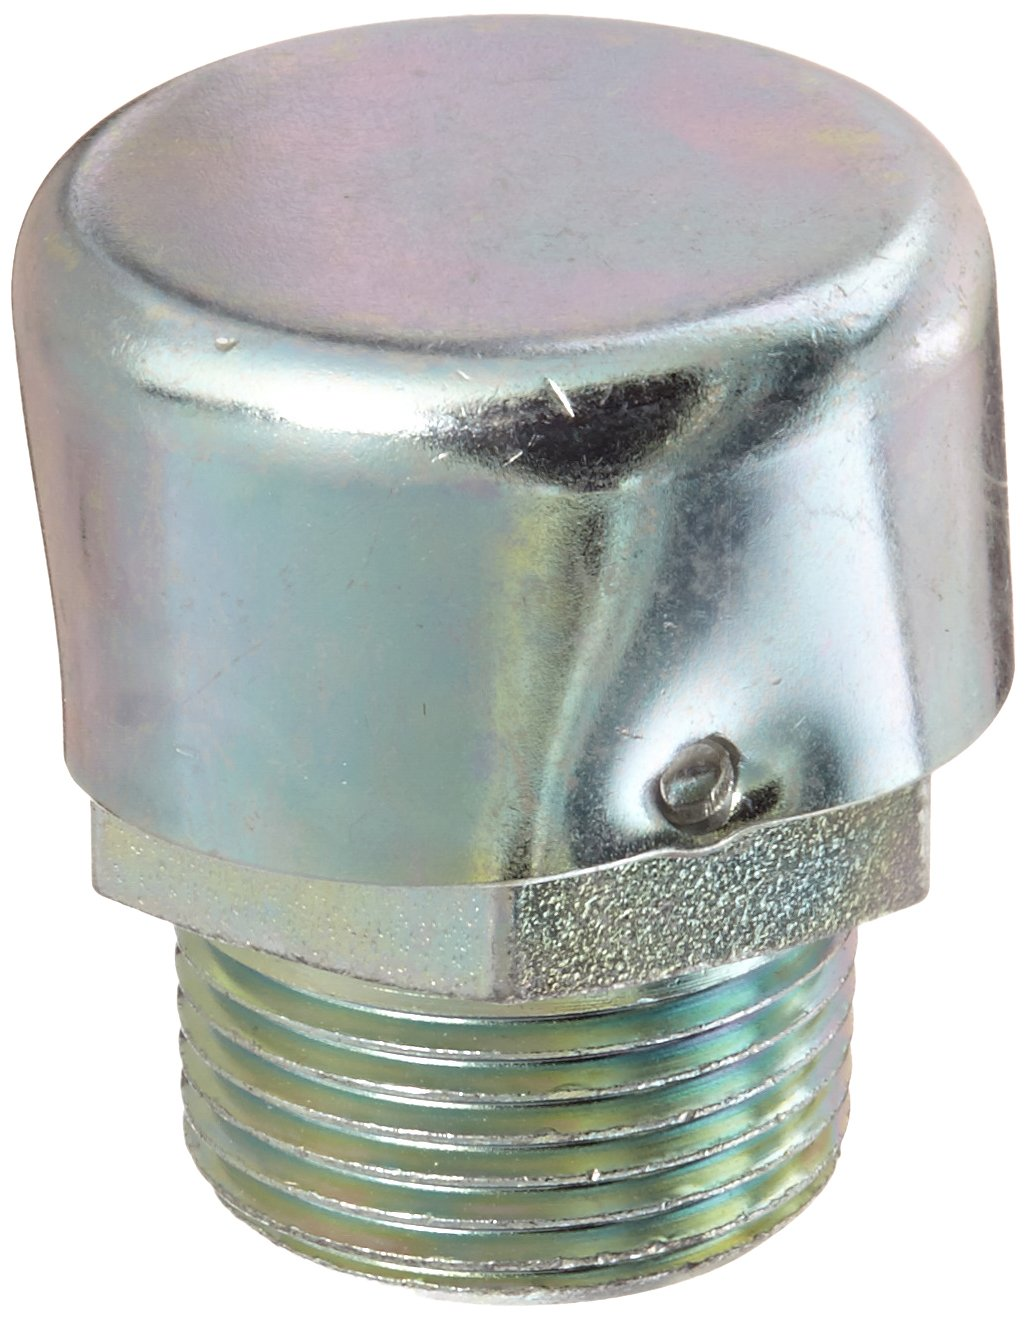 Gits 1632-075001 Style 1632 Breather Vent, 3/4-14 NPT Breather with Screen Filter